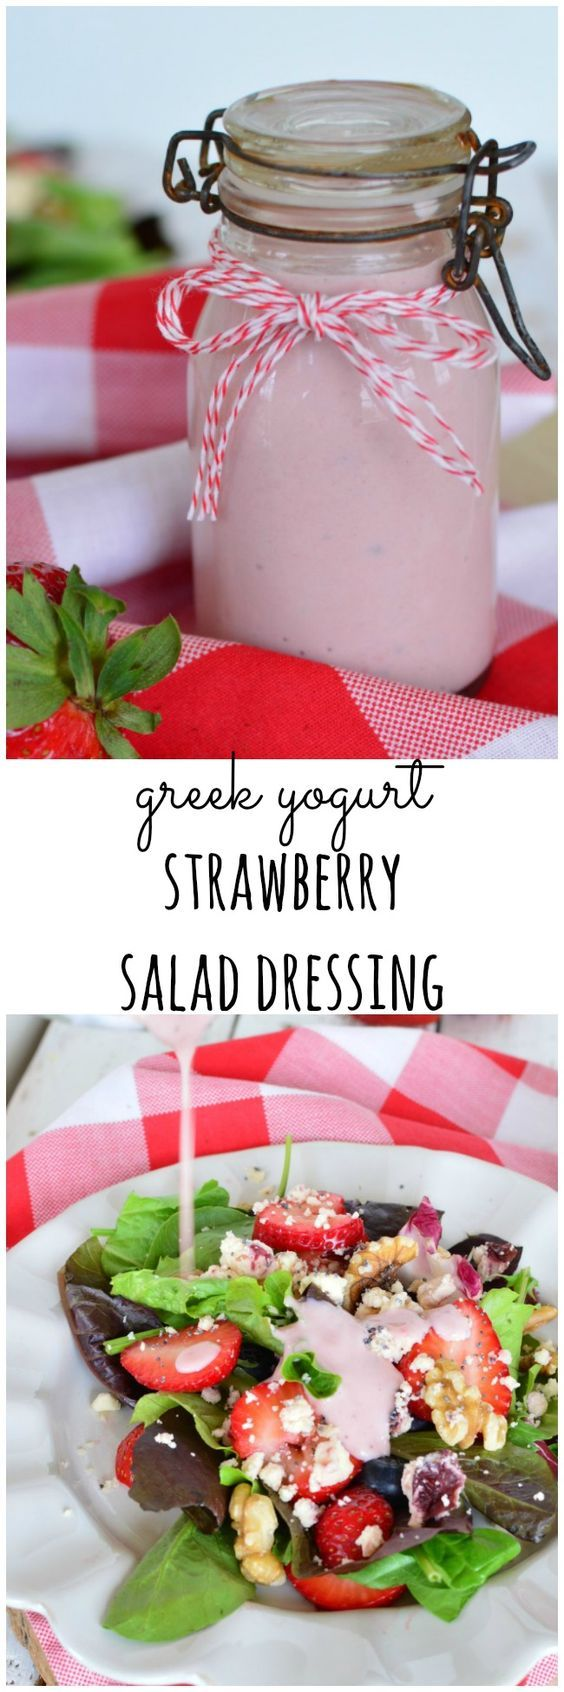 Greek Yogurt Stawberry Salad Dressing is a quick, easy, and healthy recipe. No more boring salads! www.littledairyontheprairie.com